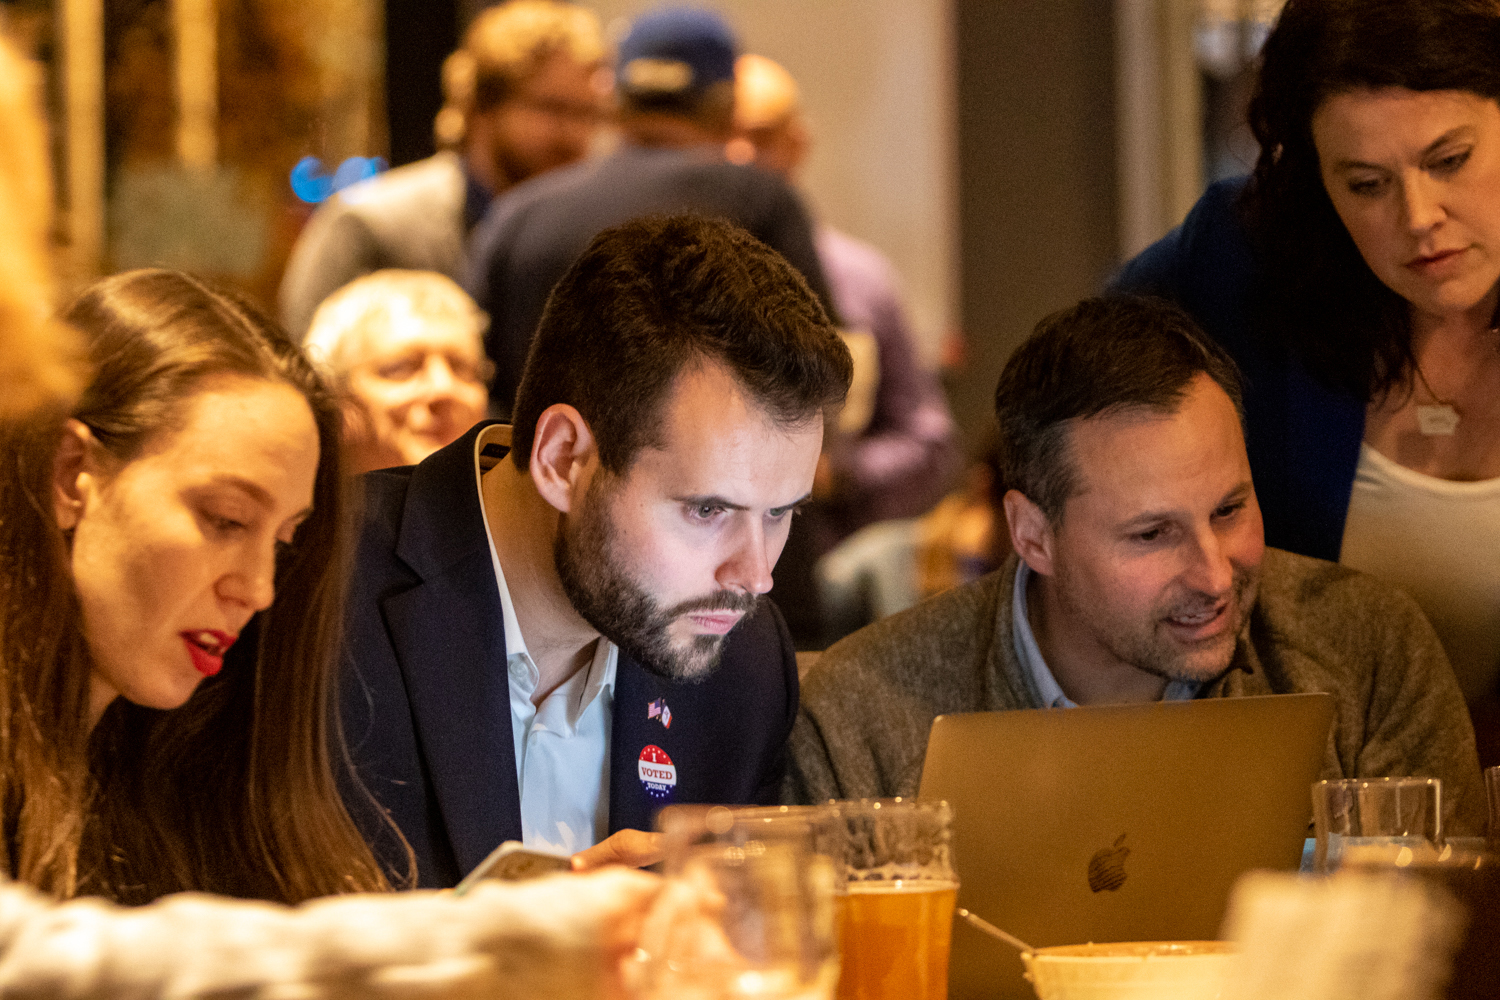 Iowa Senate Democratic Candidate Zach Wahls watches election results on his laptop during an election night watch party at Big Grove Brewery in Iowa City on Tuesday, Nov. 6, 2018.